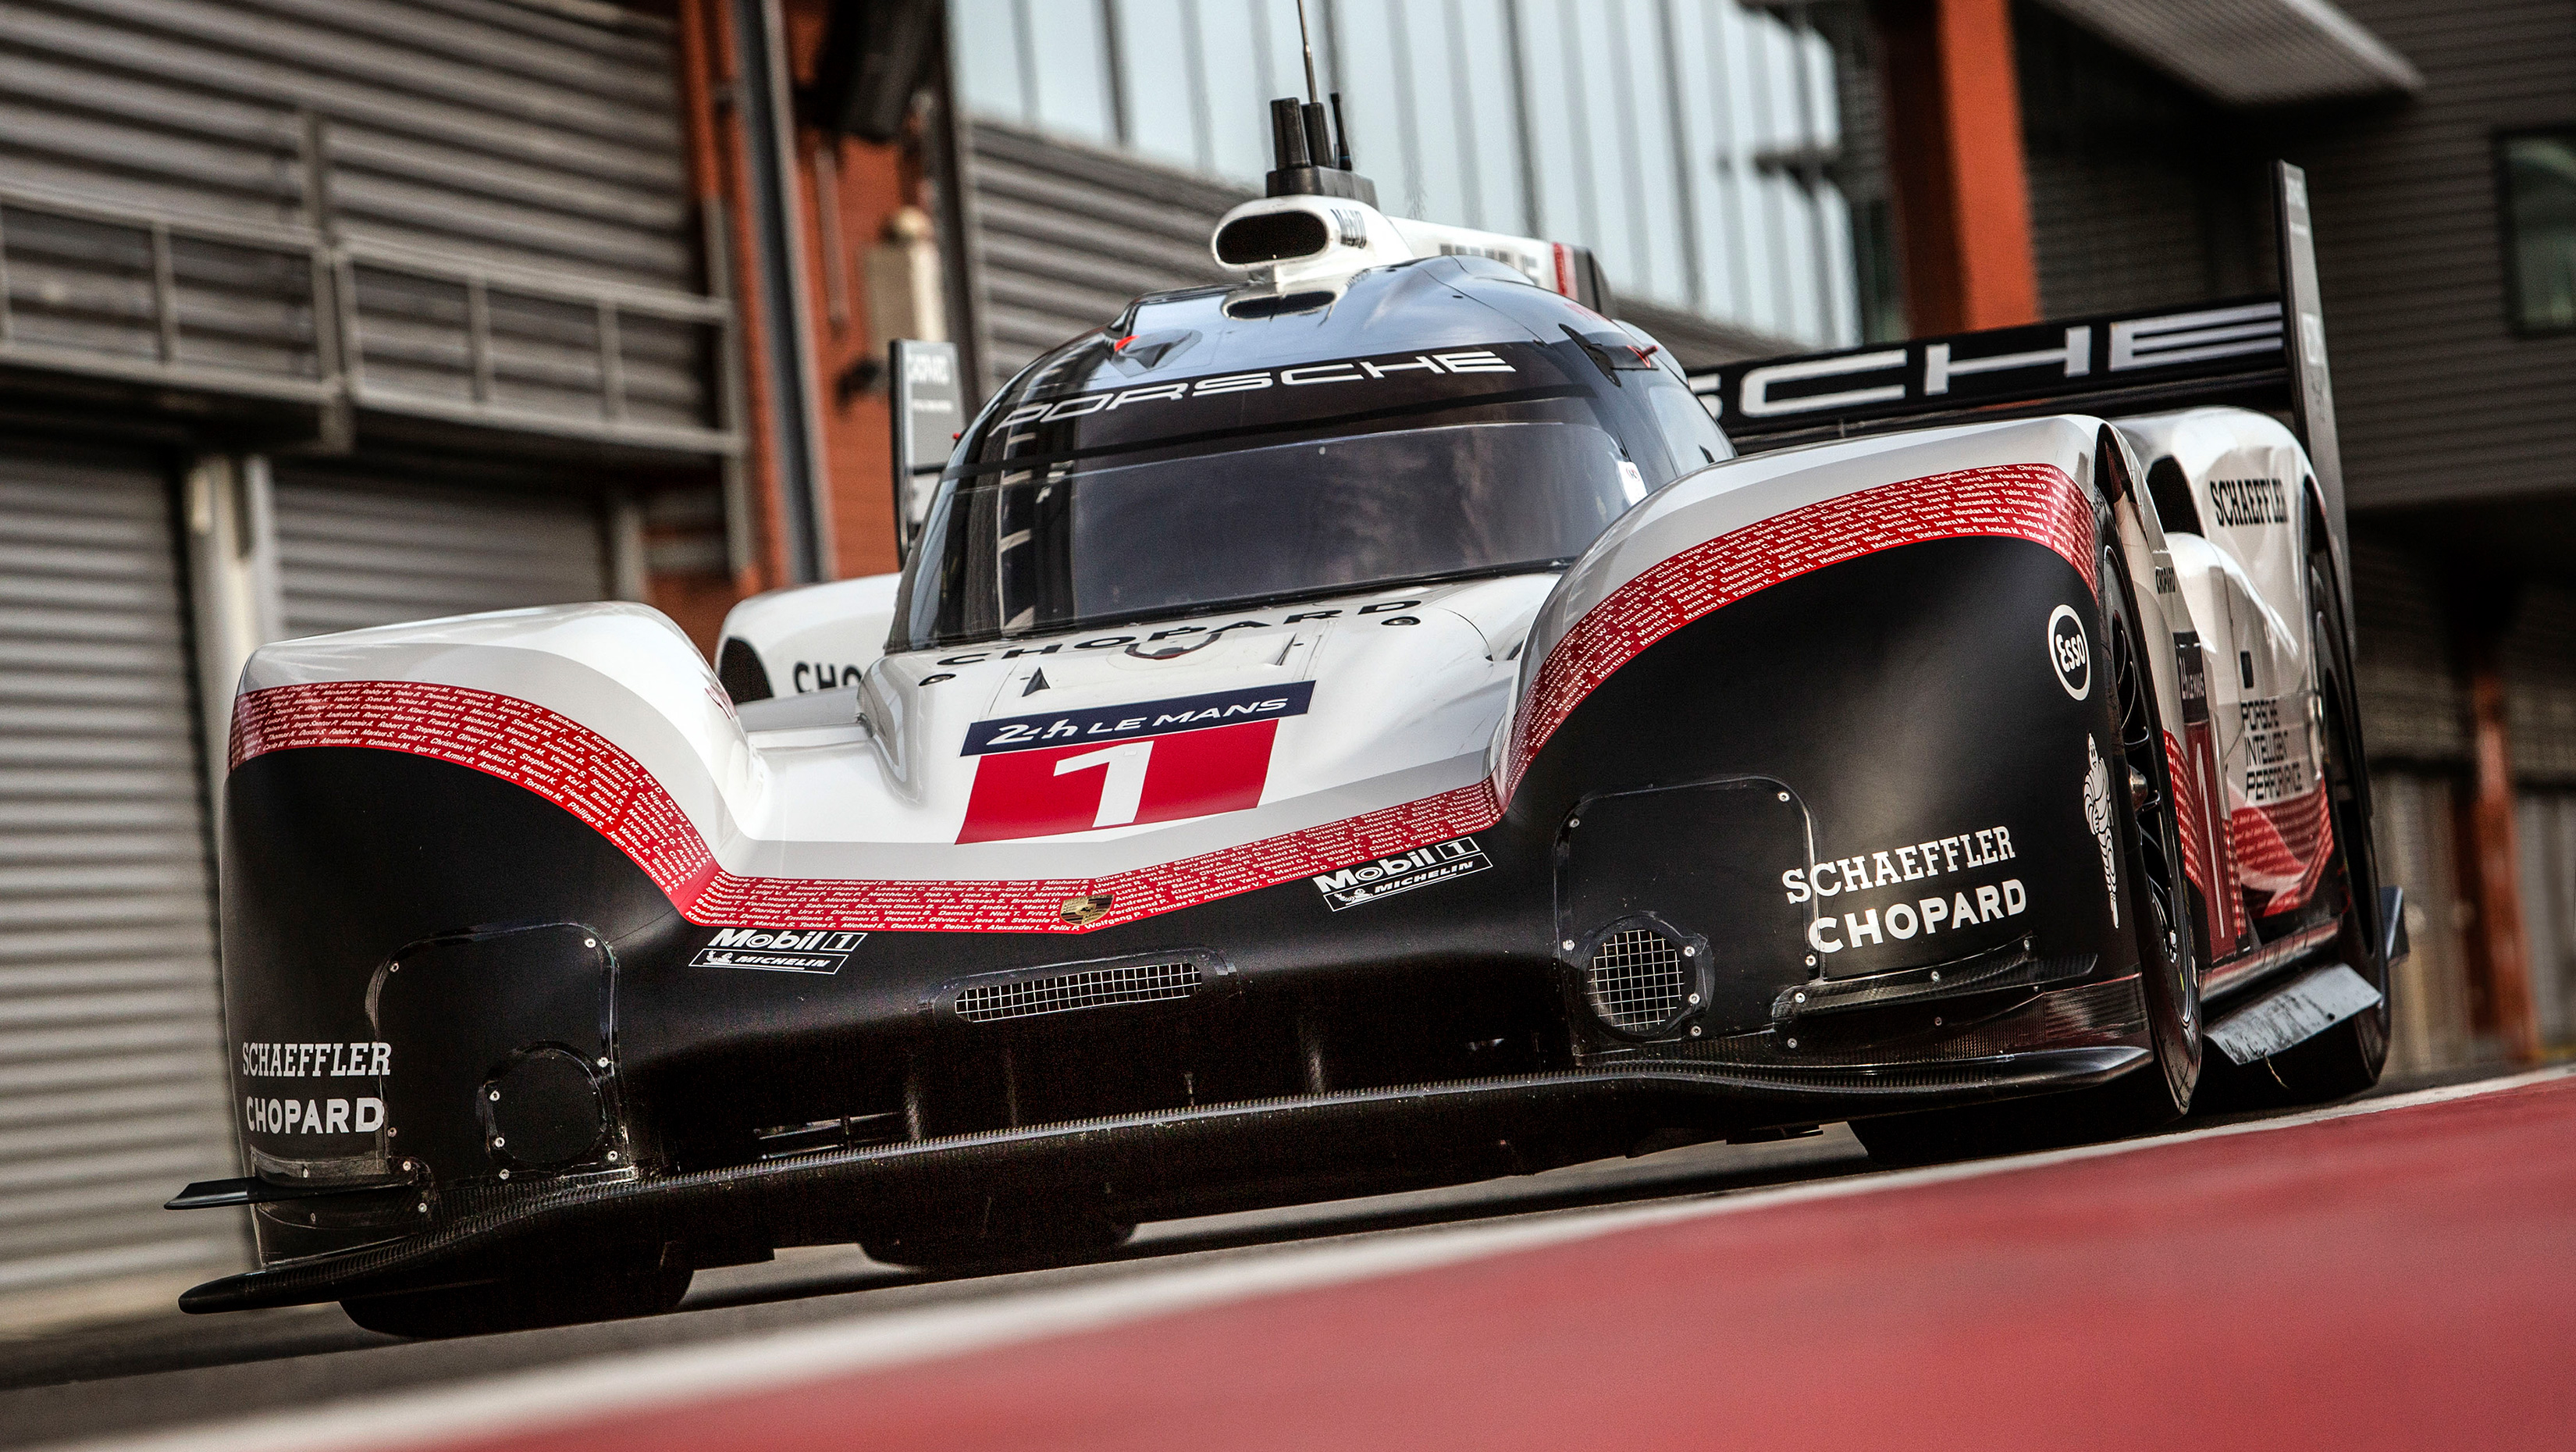 Porsche 919 Hybrid Evo Going Faster Than A Formula 1 Car